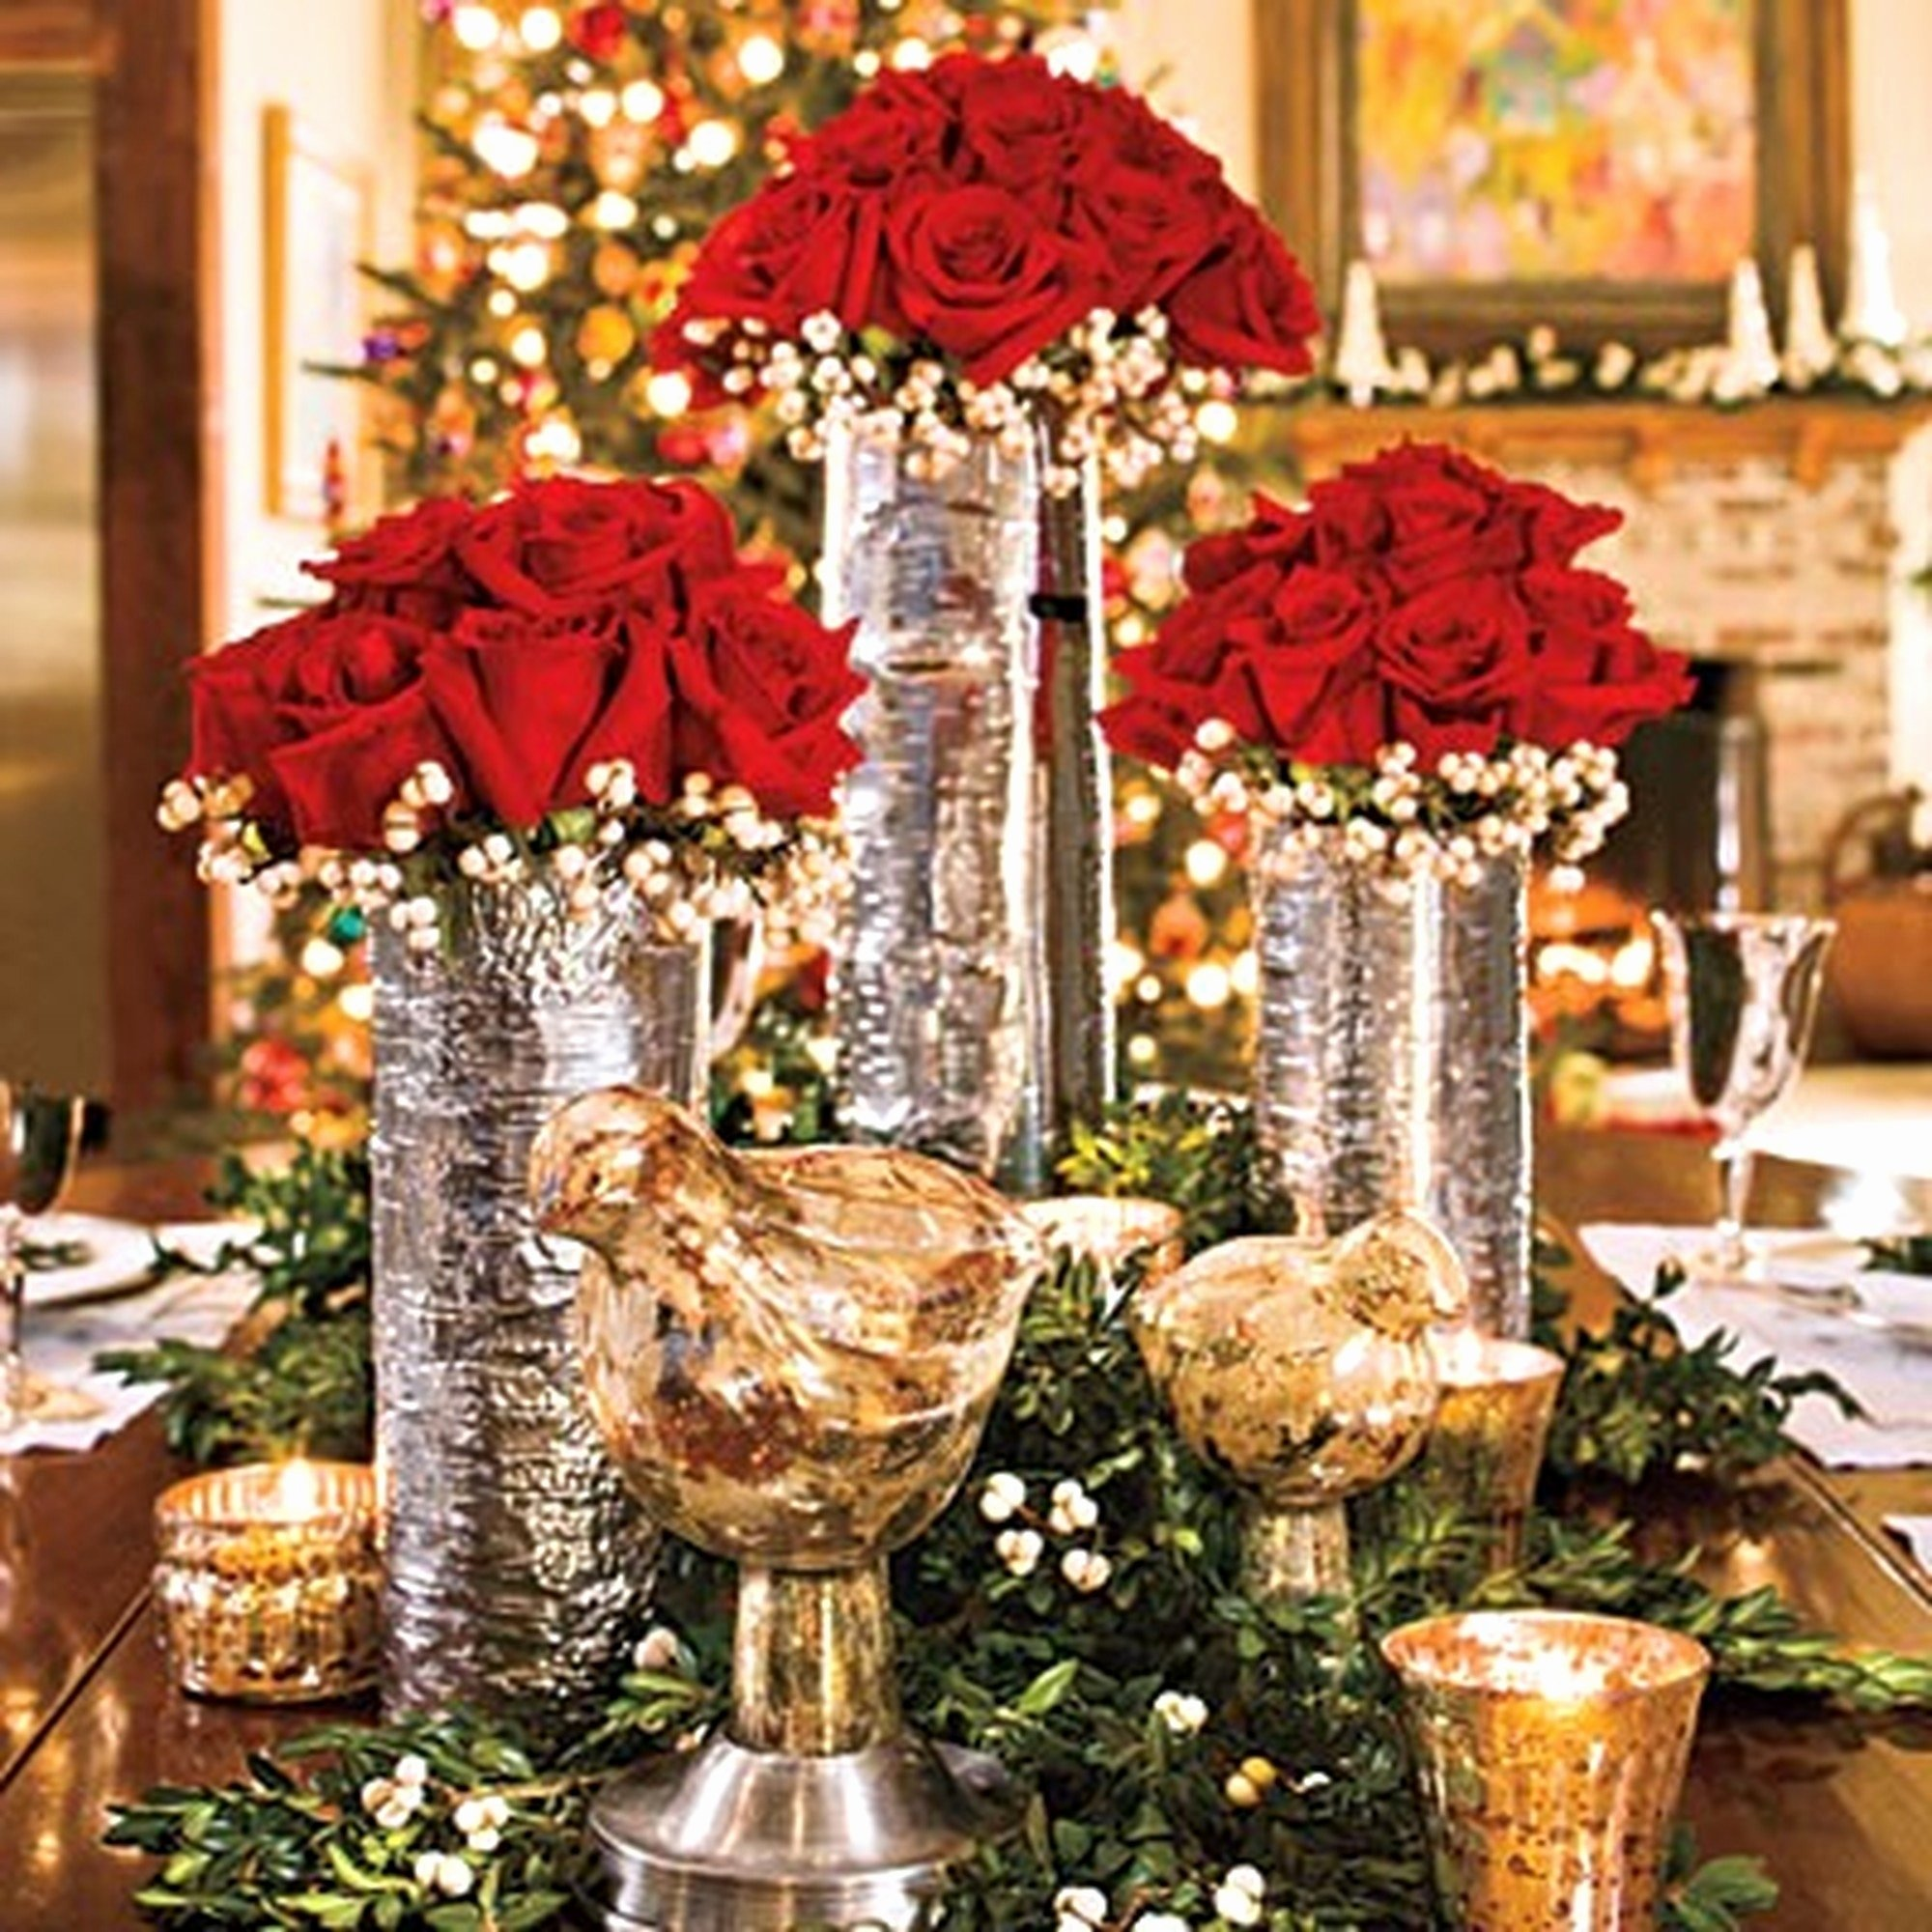 10 Gorgeous Beauty And The Beast Wedding Theme Ideas wedding decoration red and gold awesome beauty and the beast wedding 2020